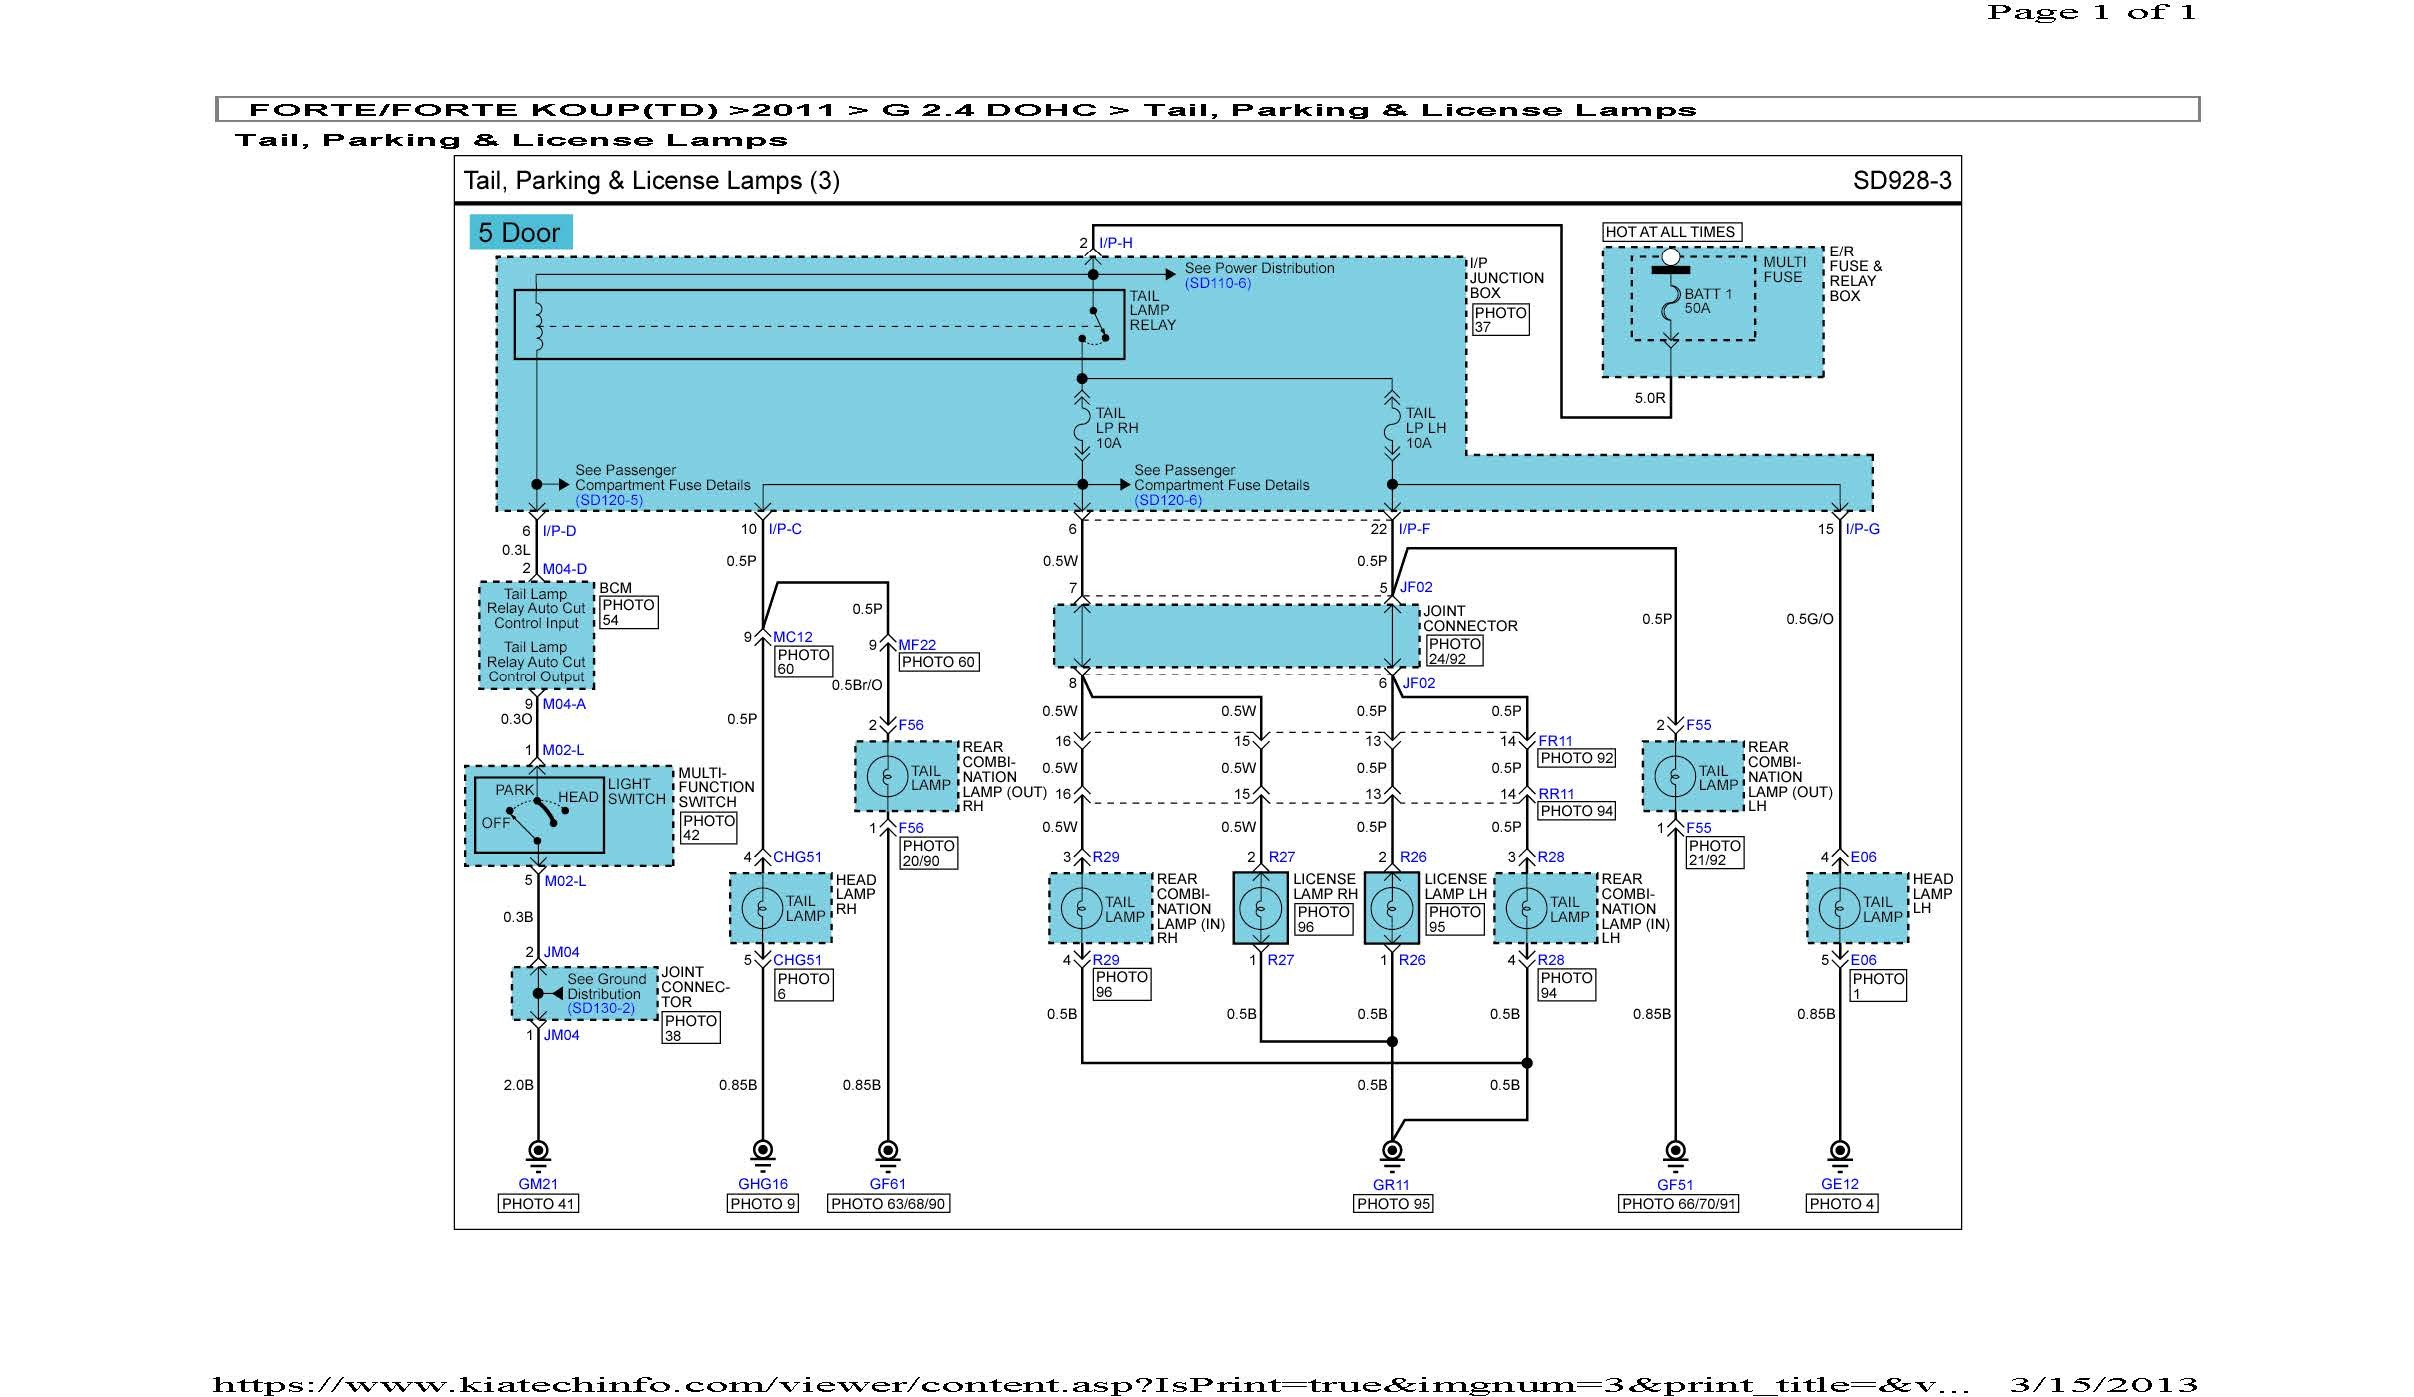 2003 kia spectra engine diagram electrical wiring kia so o wiring diagrams automotive diagrams of 2003 kia spectra engine diagram?resize=242258 2003 kium spectra part diagram wiring schematic fuse box in a 2002